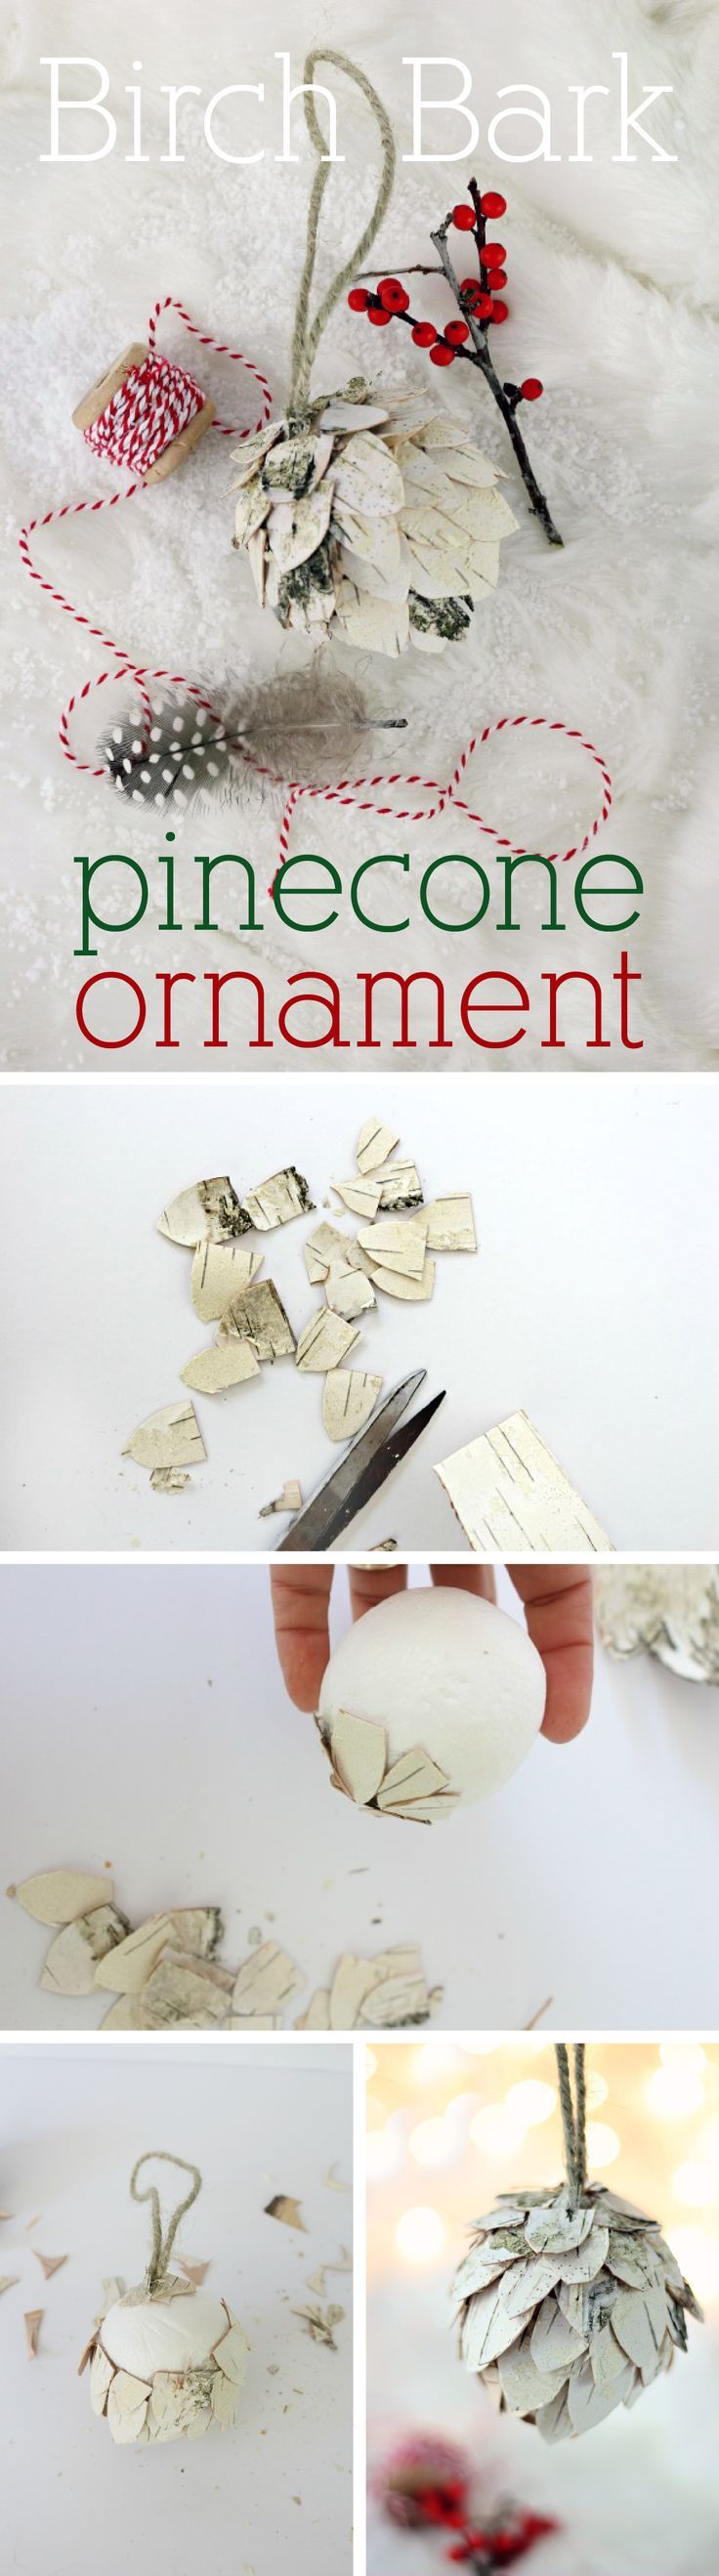 Birch bark brings that beautiful woodland touch into your home and onto your tree with this DIY pine cone ornament: www.ehow.com/...